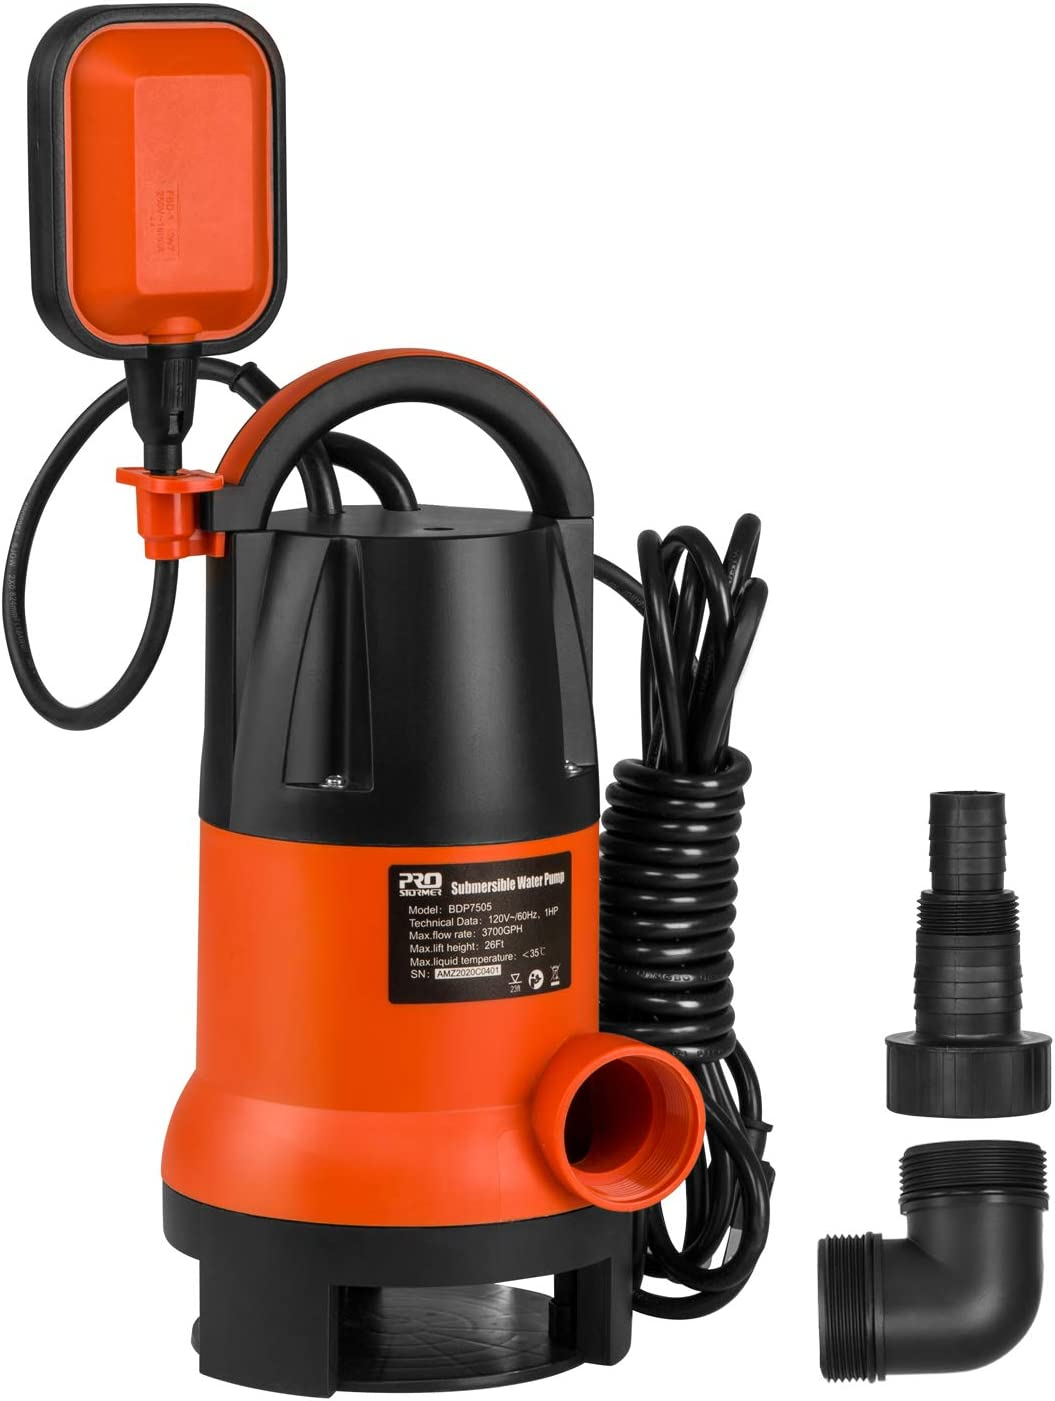 Sump Pump, PROSTORMER 1HP 3700GPH Submersible Clean/Dirty Water Pump with Automatic Float Switch for Pool, Pond,Garden, Flooded Cellar, Aquarium and Irrigation (Orange)